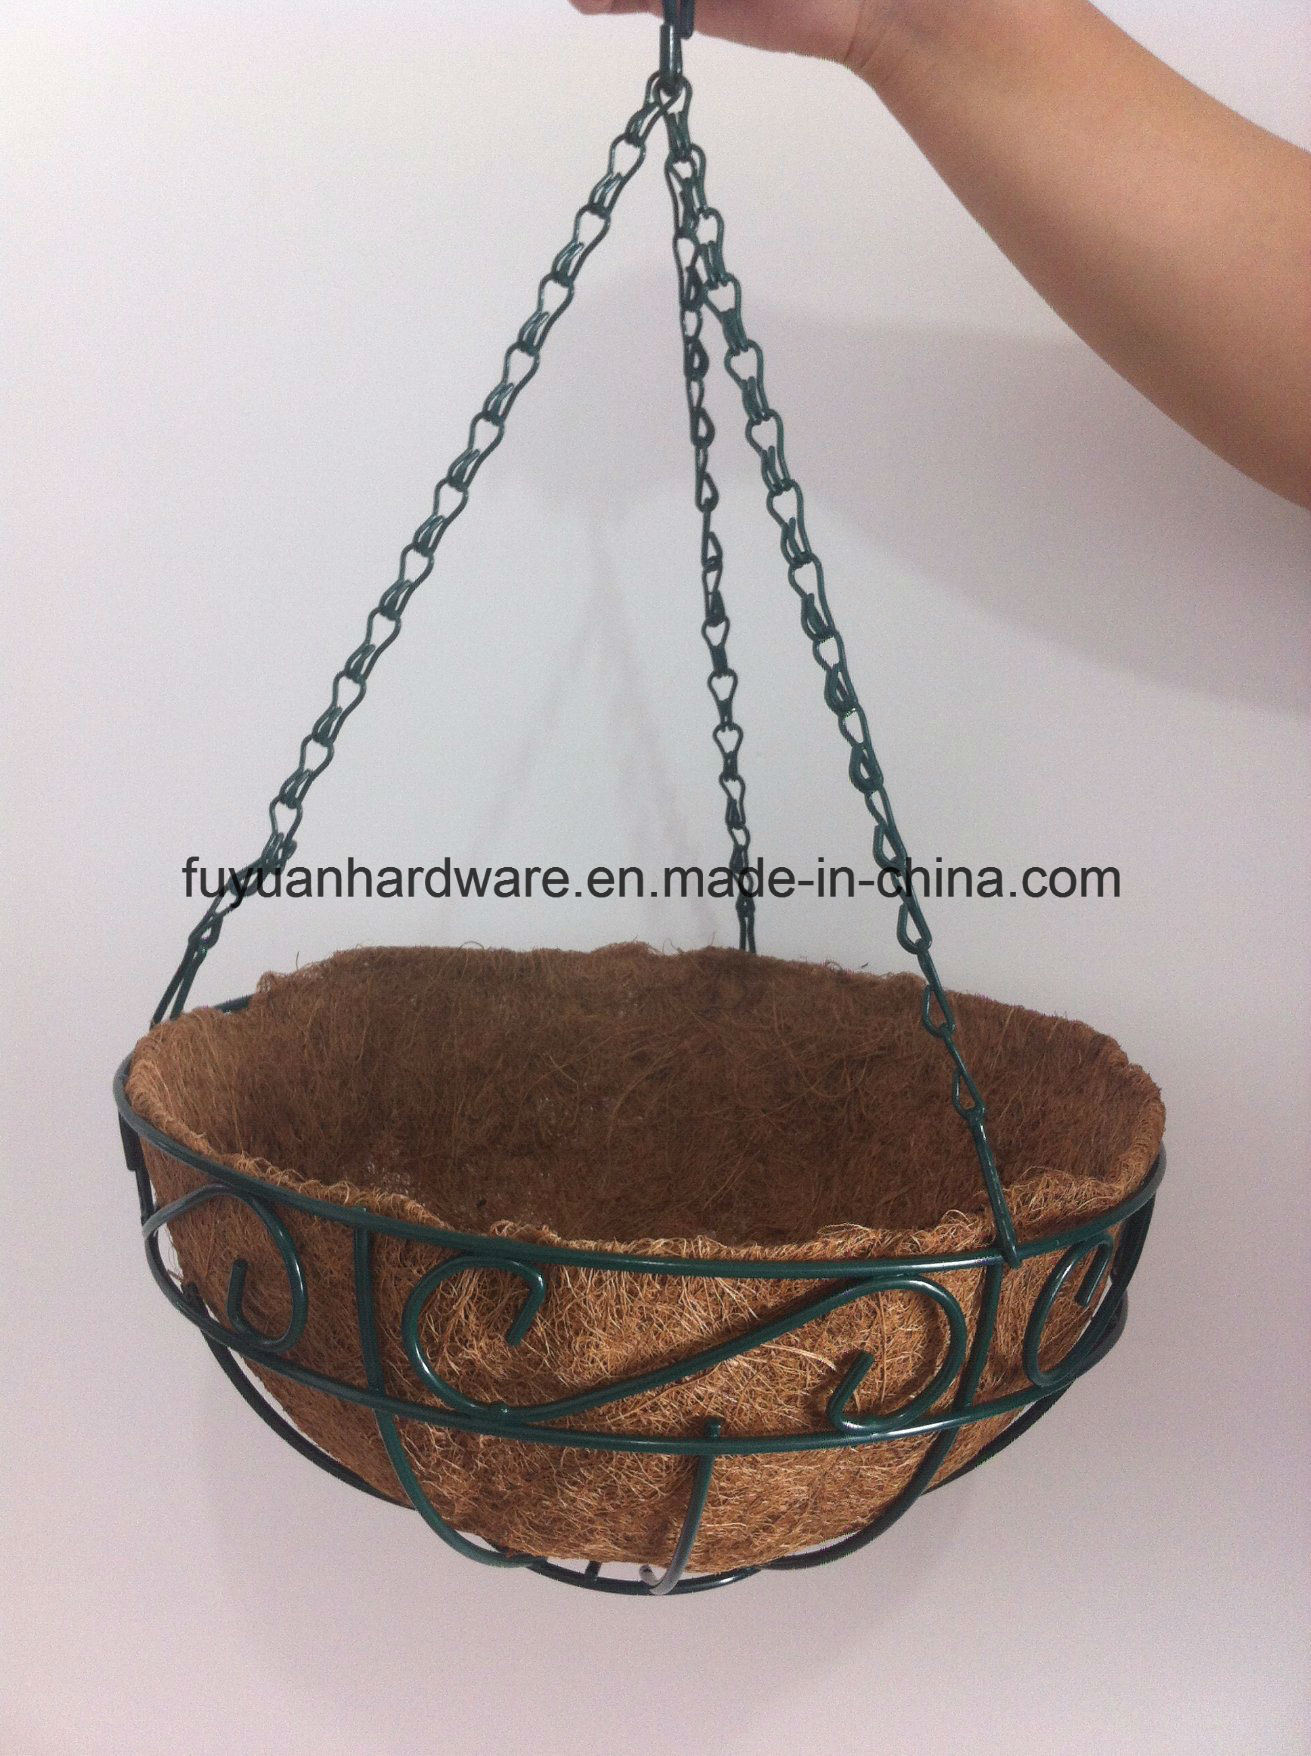 2017 Wholesale Factory Direct Supply Metal Hanging Basket